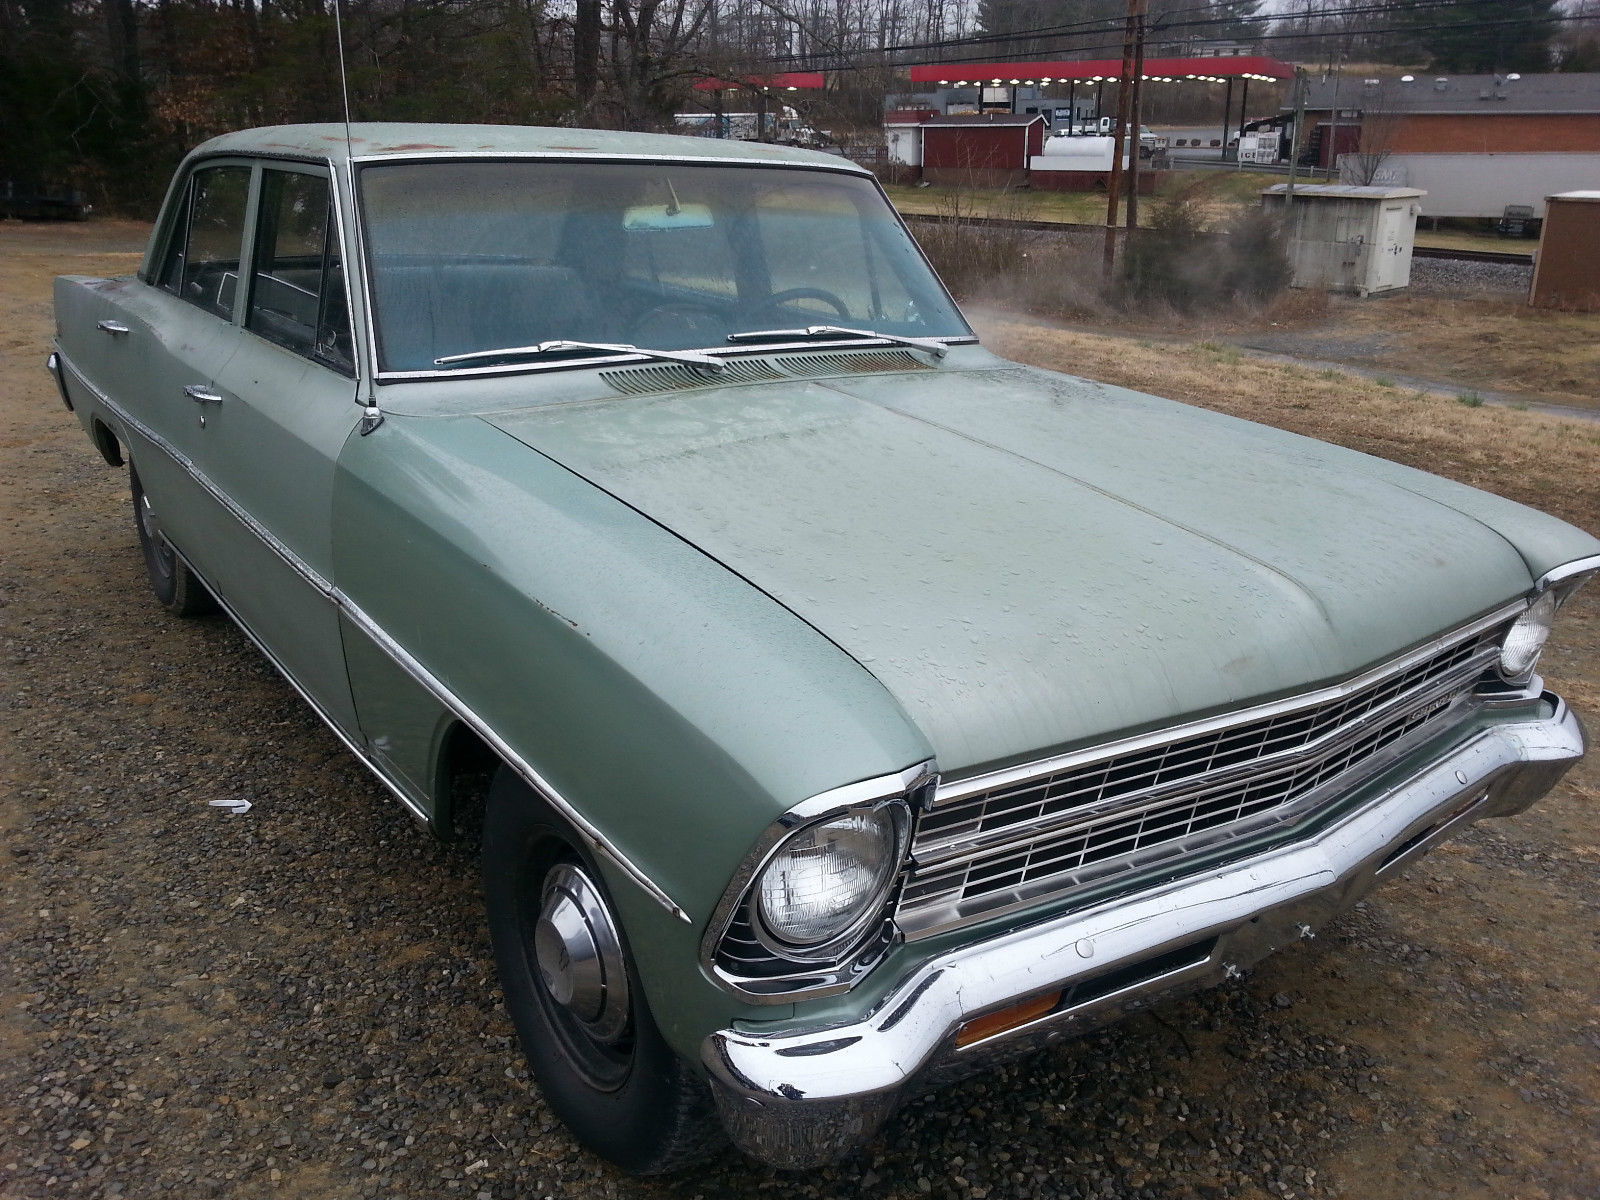 1967 chevy nova 4 door lots of new parts ready to drive